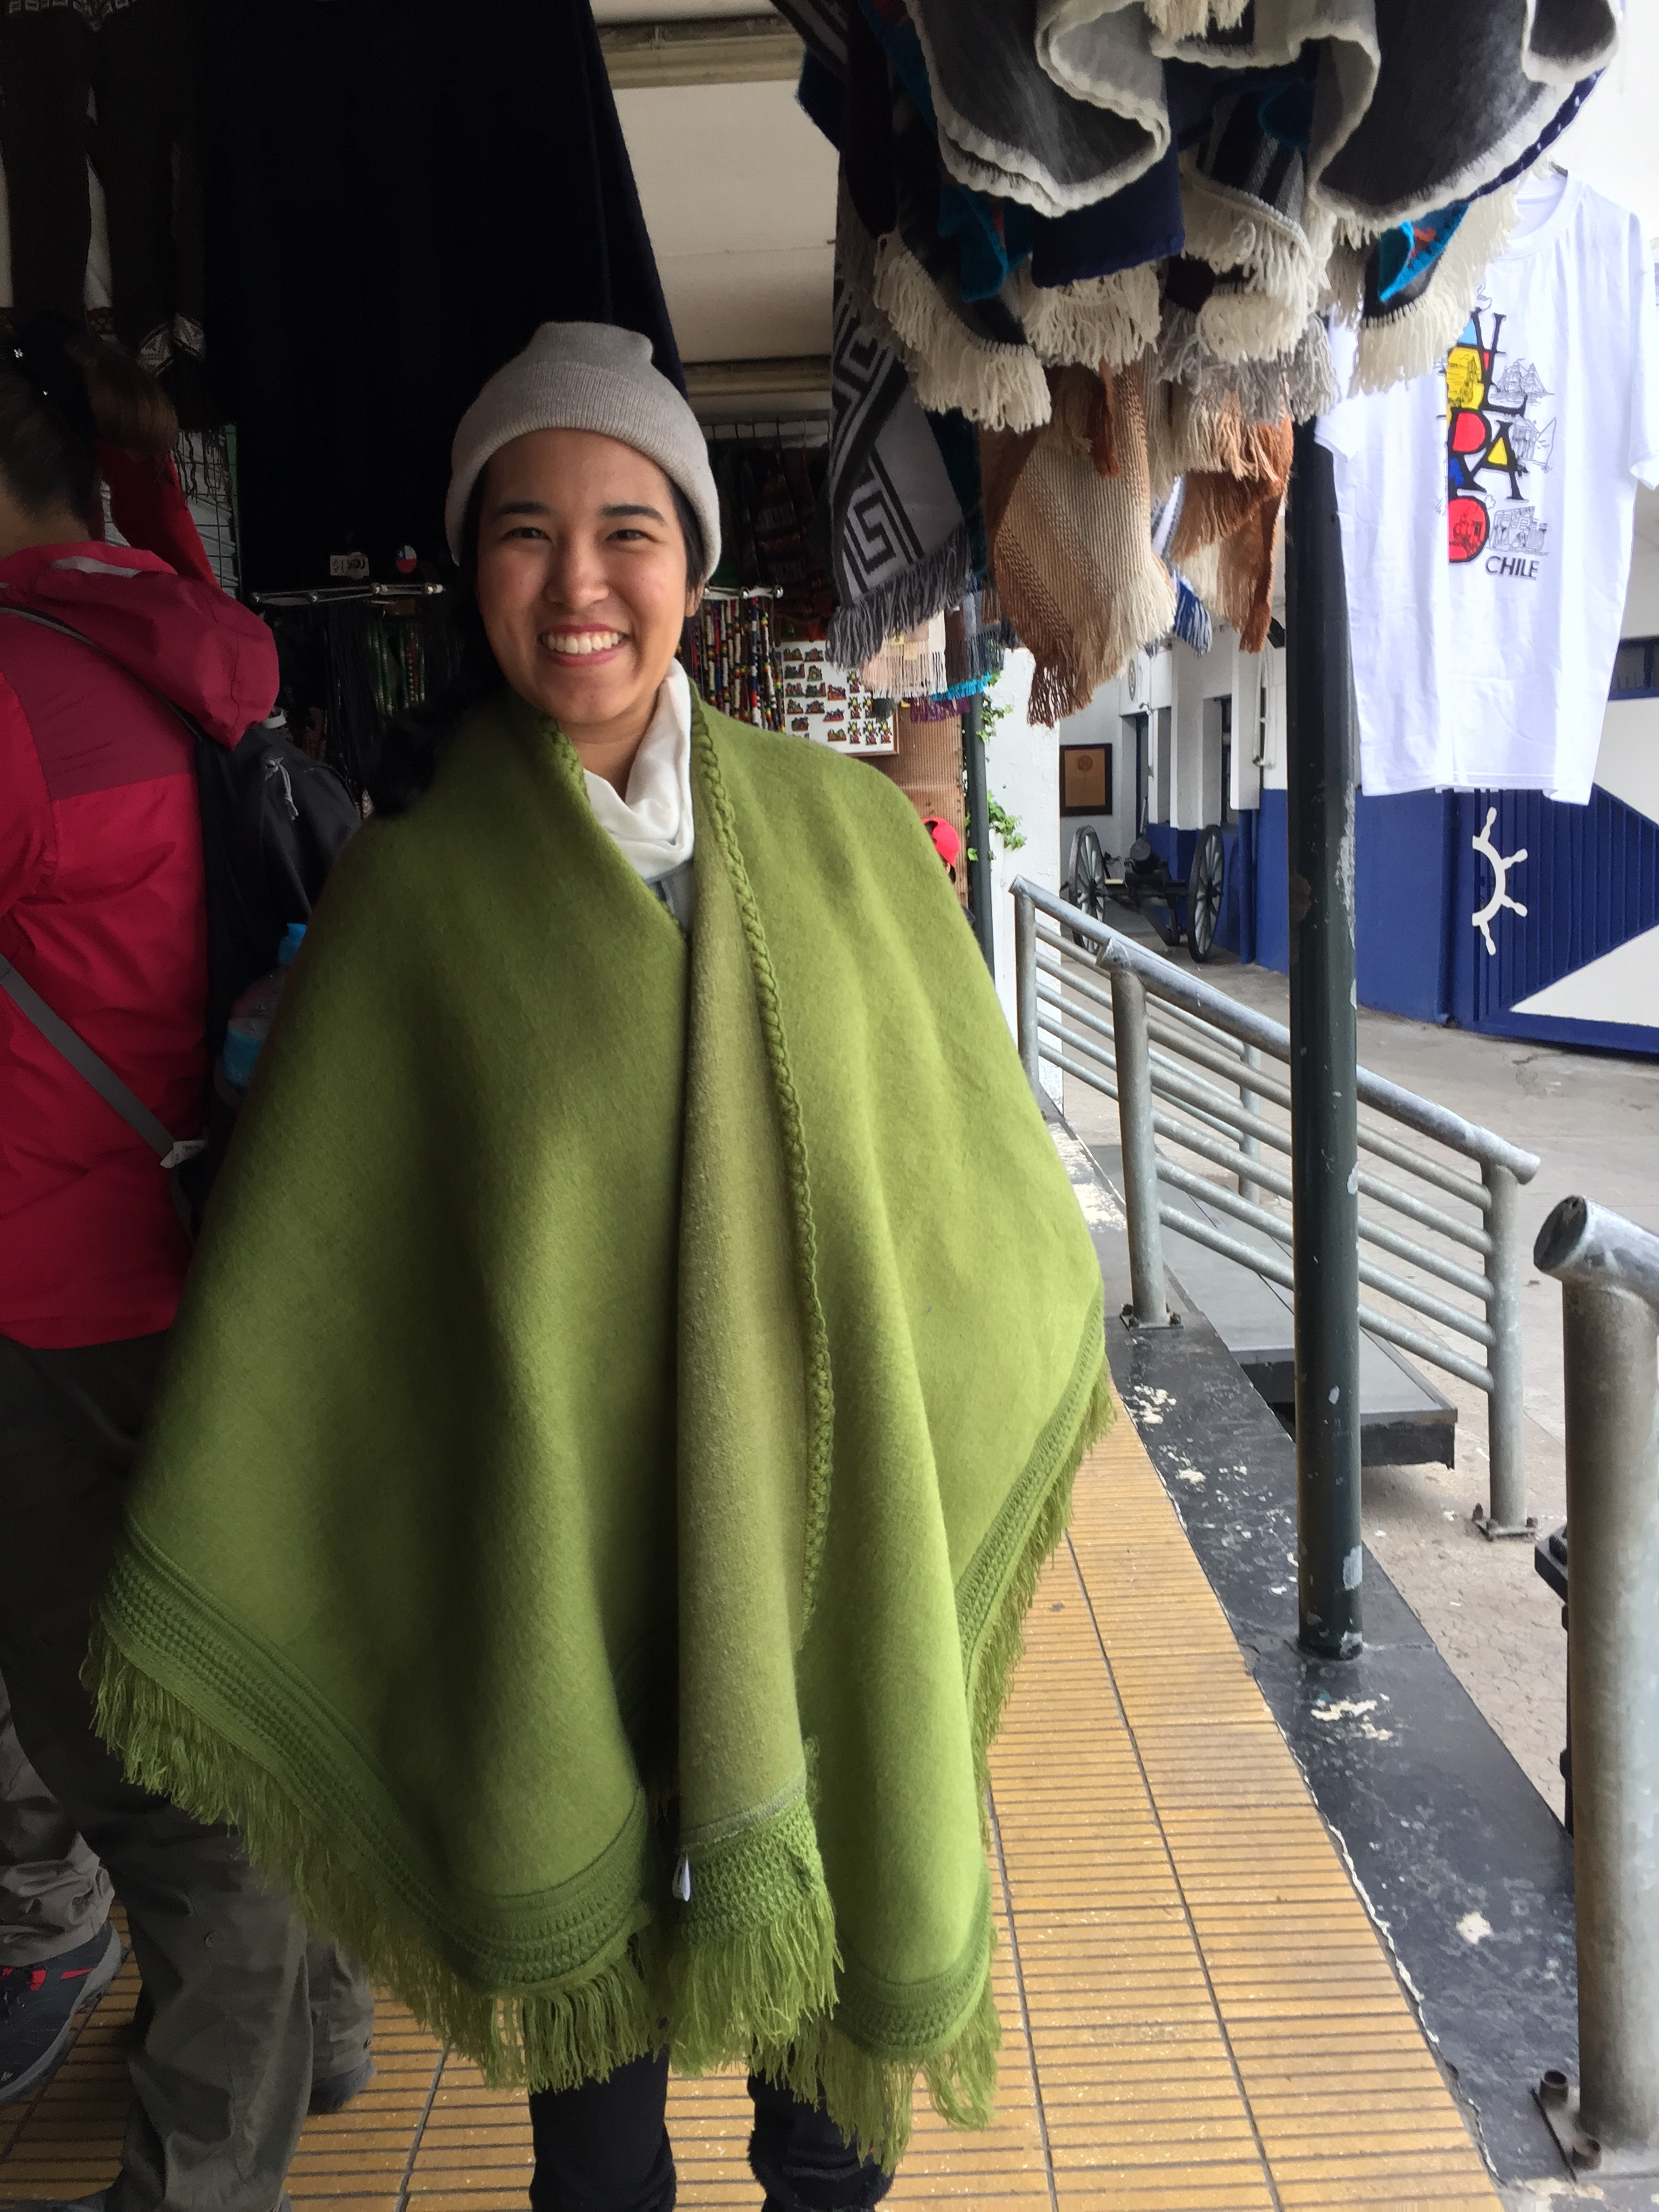 Topping the list of my regrets on this trip is not buying this poncho!